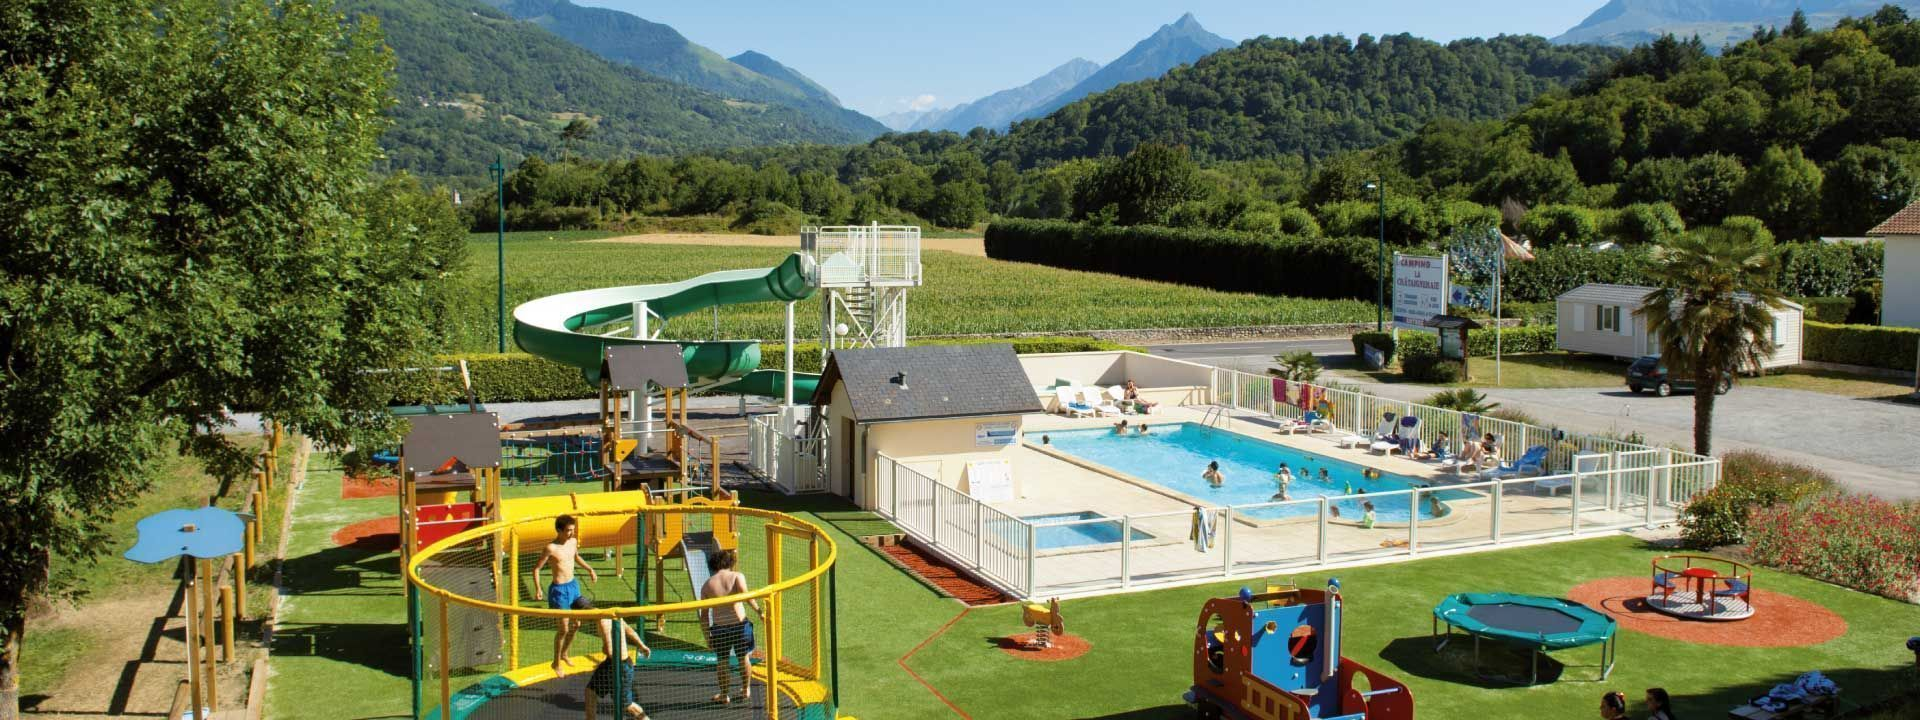 Camping hautes pyrenees piscine camping 2 toiles d 39 for Camping pyrenees atlantique avec piscine